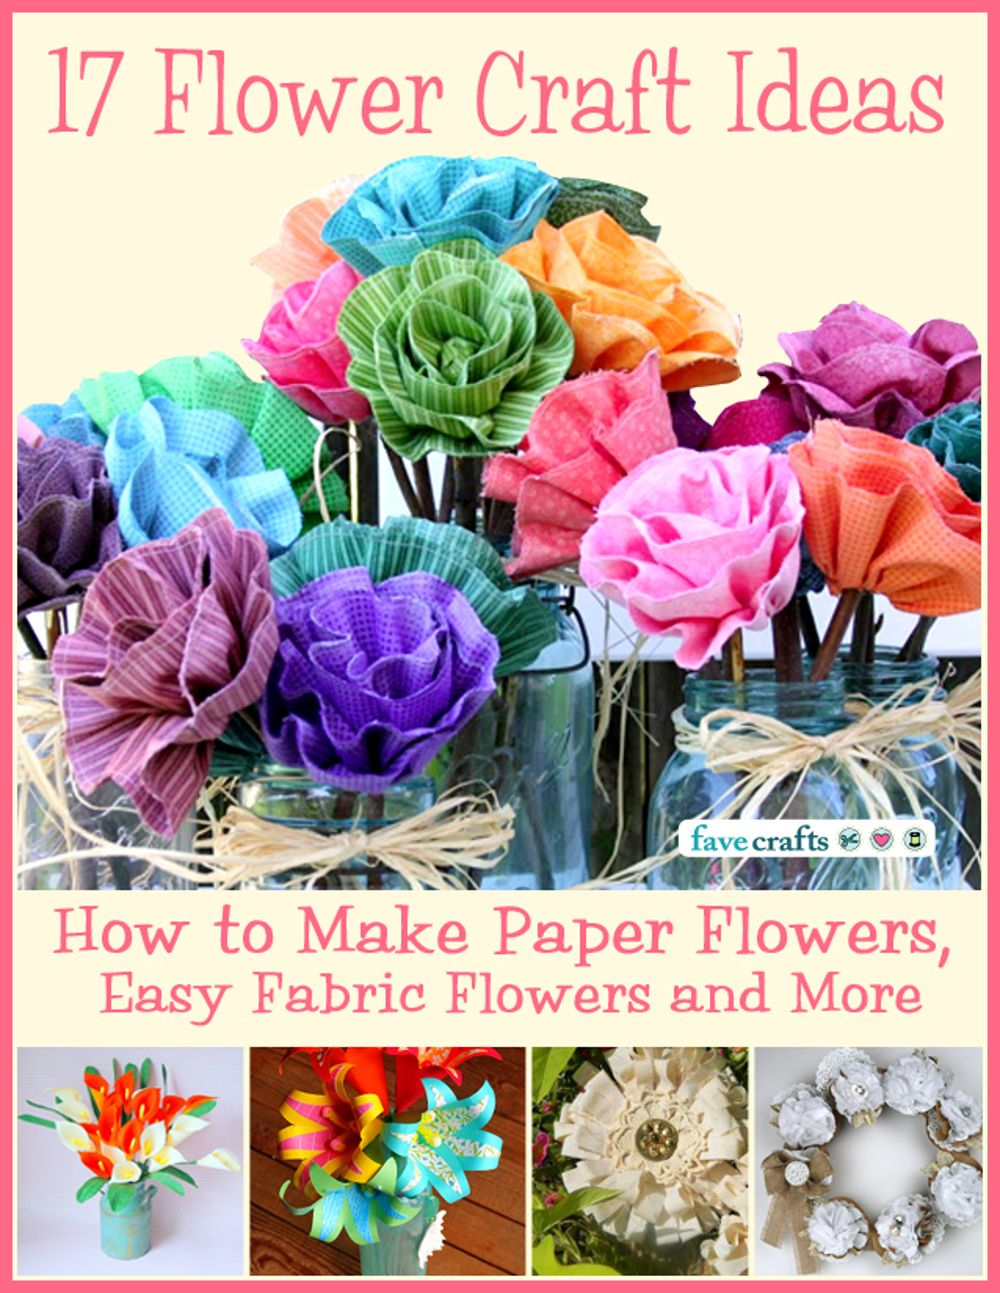 17 flower craft ideas how to make paper flowers easy fabric 17 flower craft ideas how to make paper flowers easy fabric flowers and more free ebook mightylinksfo